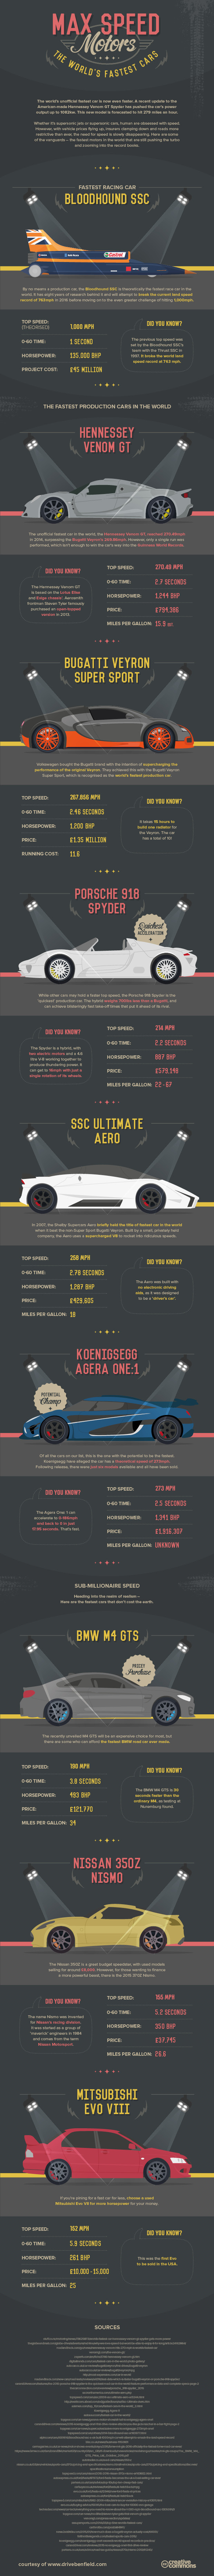 infographic - Benfield Motors - the worlds fastest cars